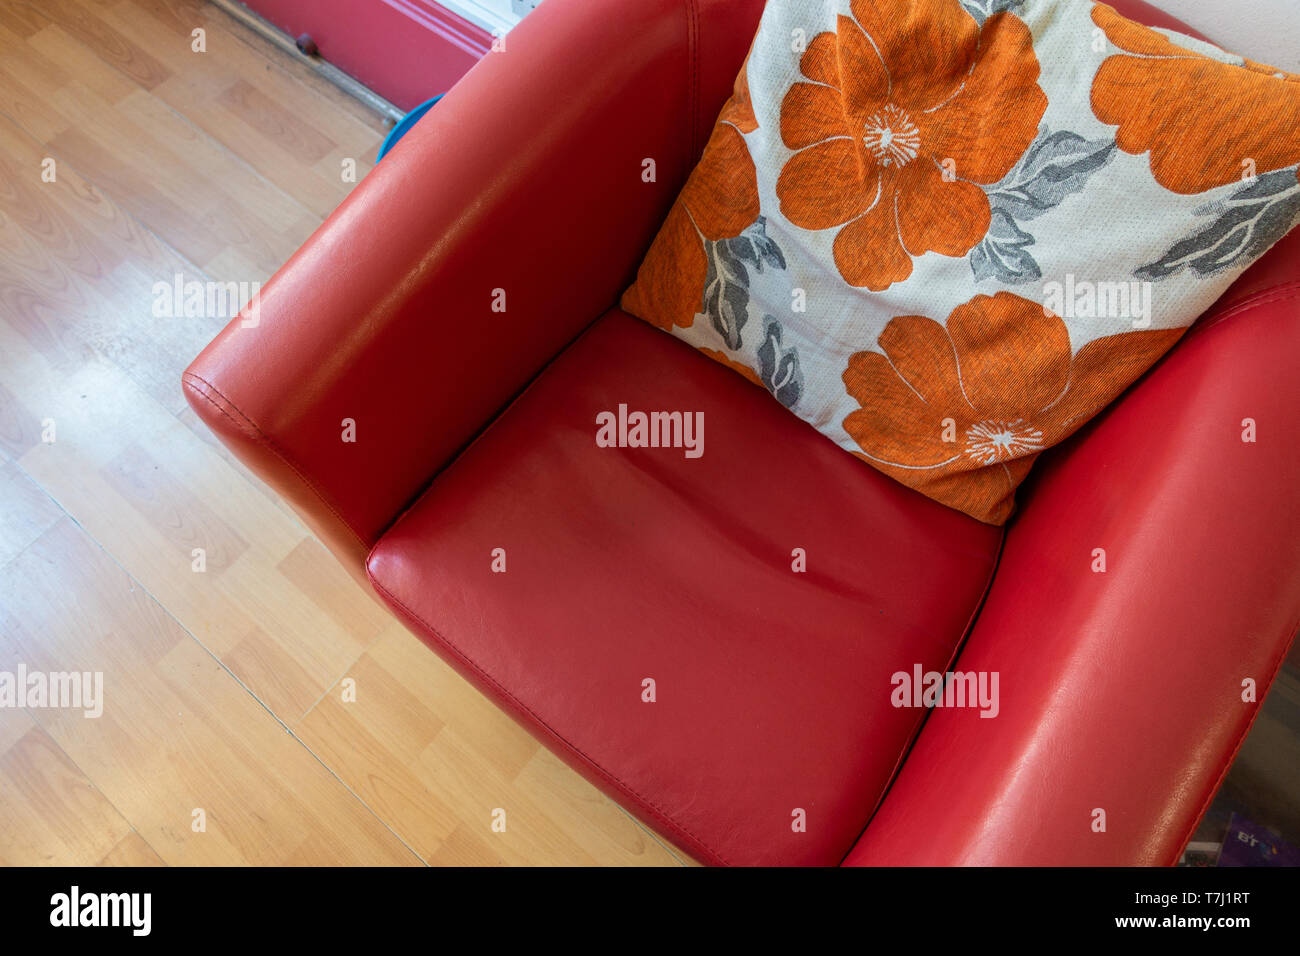 Looking down at a comfortable red armchair with a floral cushion. - Stock Image